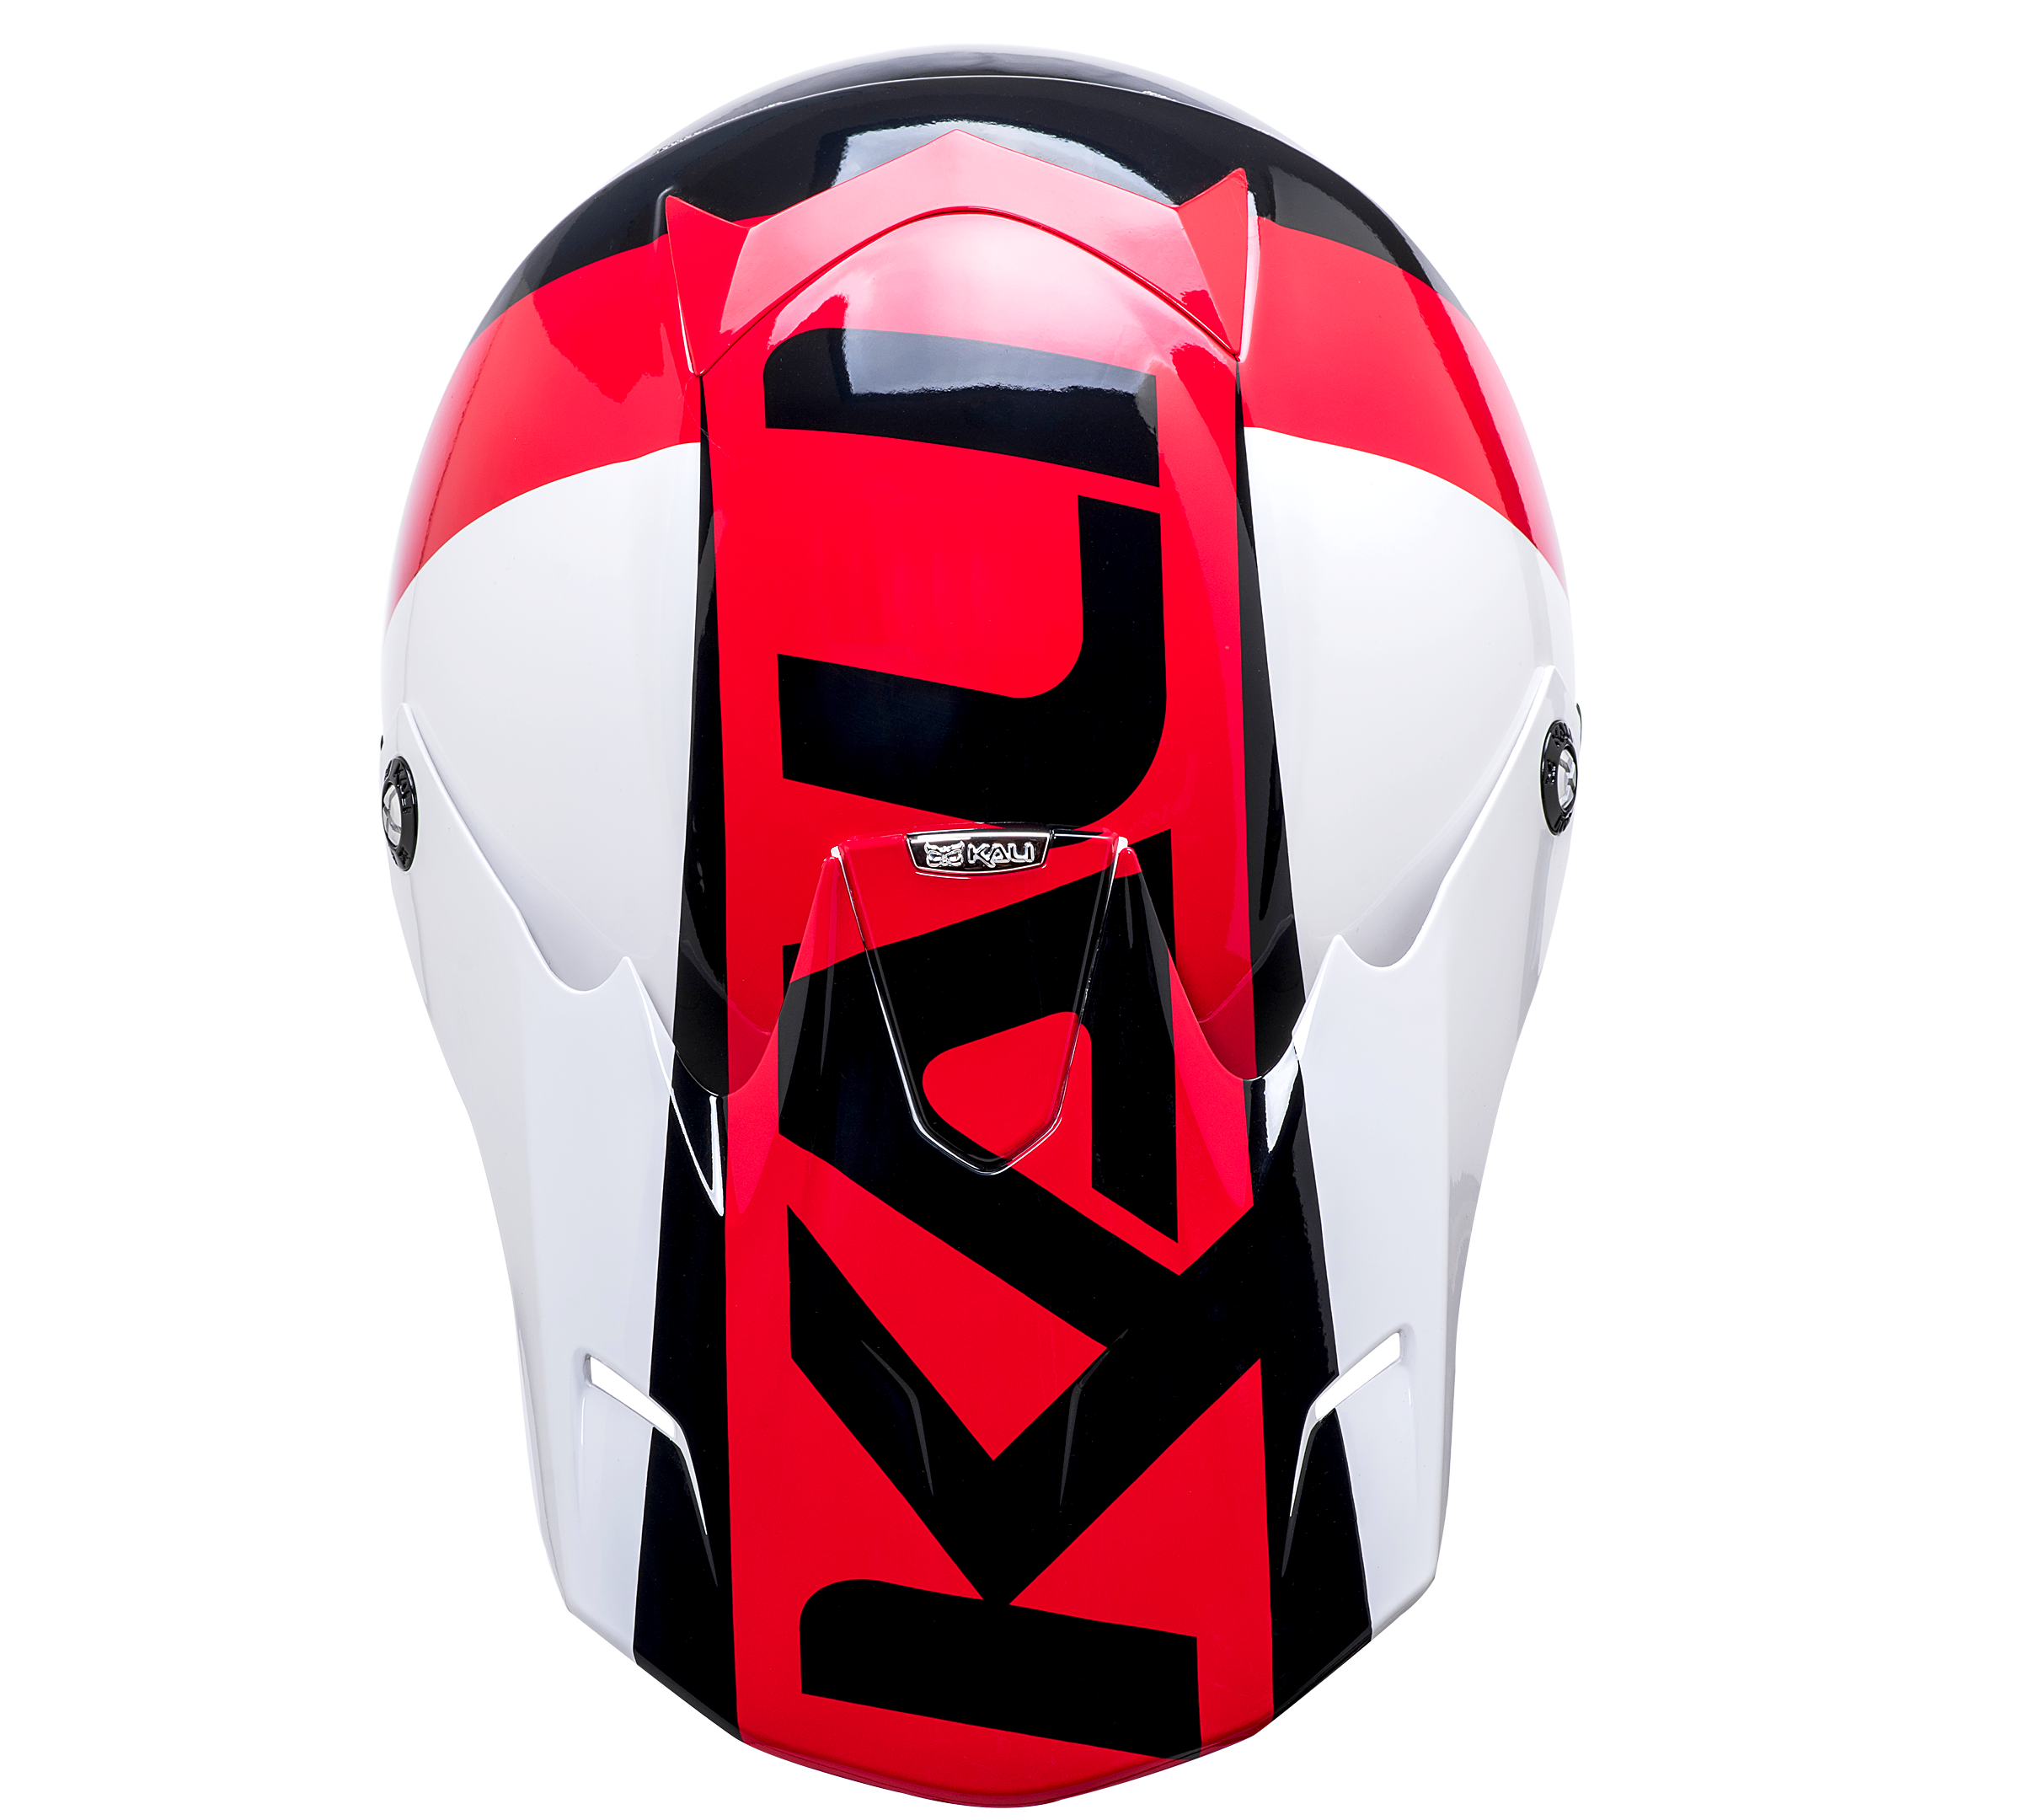 Prana - Red/ White/ Black - Kali Motorsports